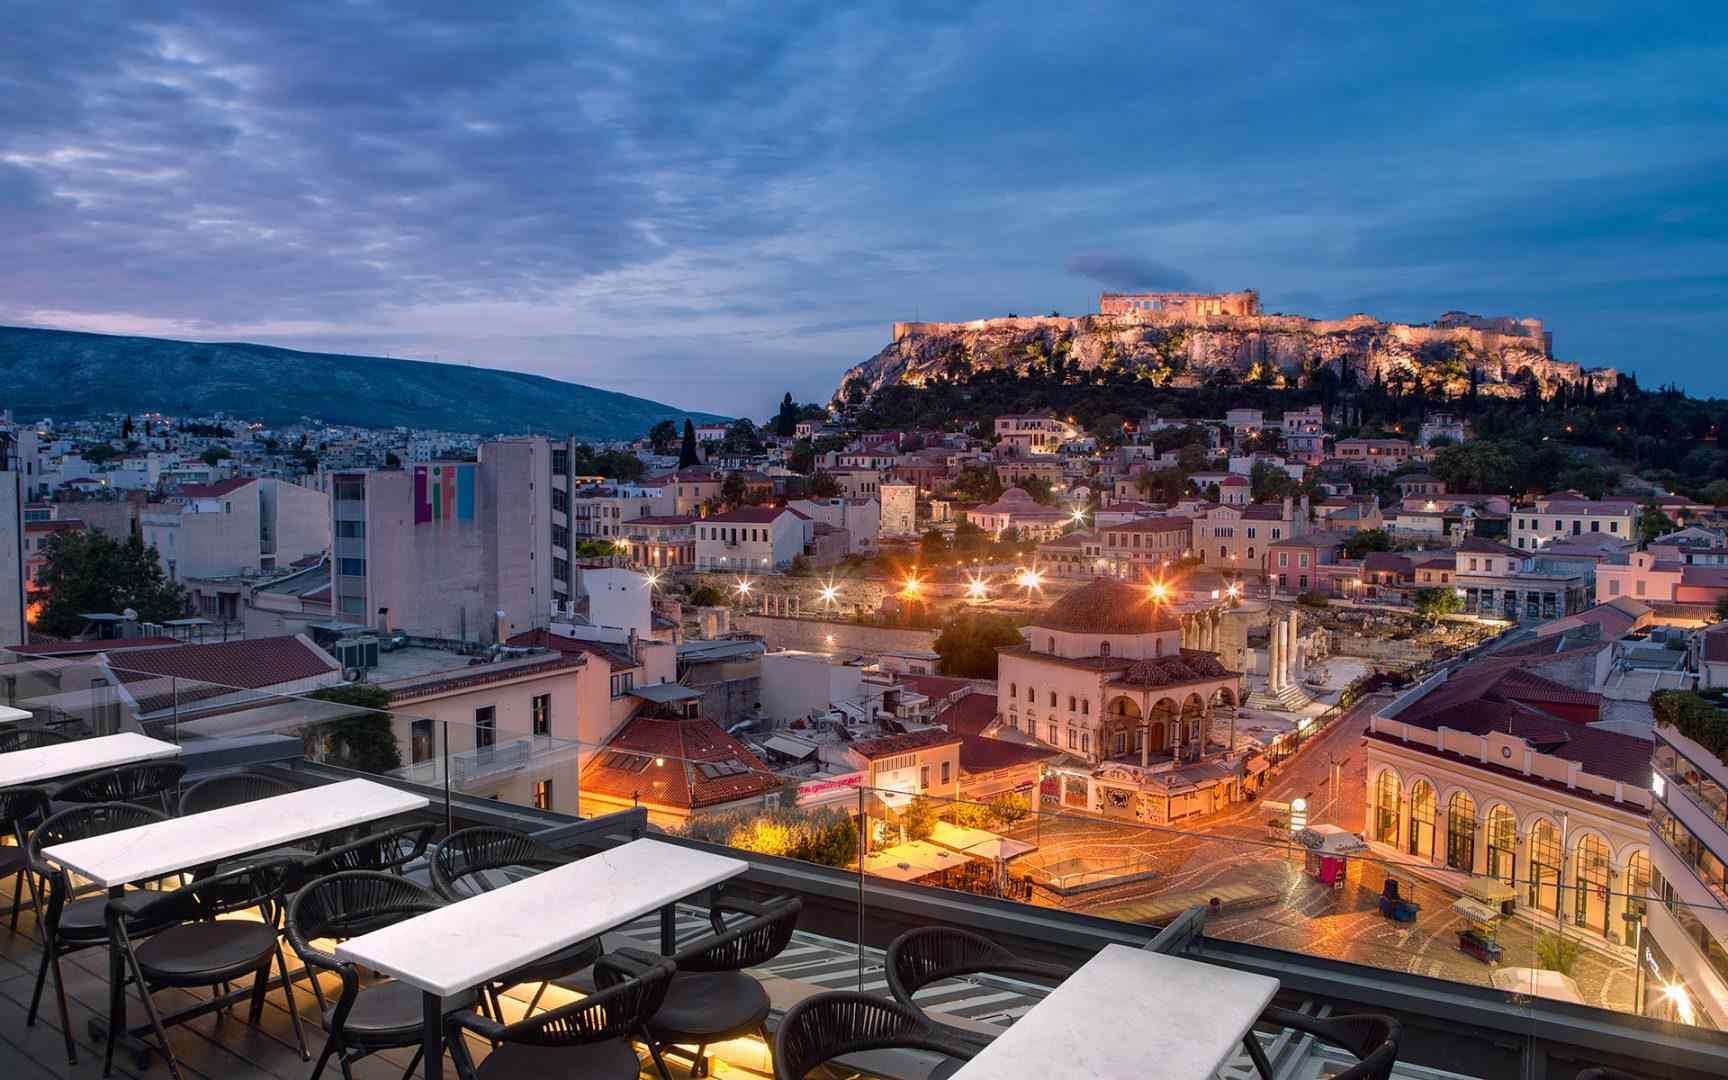 A for Athens bar during early evening with view of the Acropolis in the background